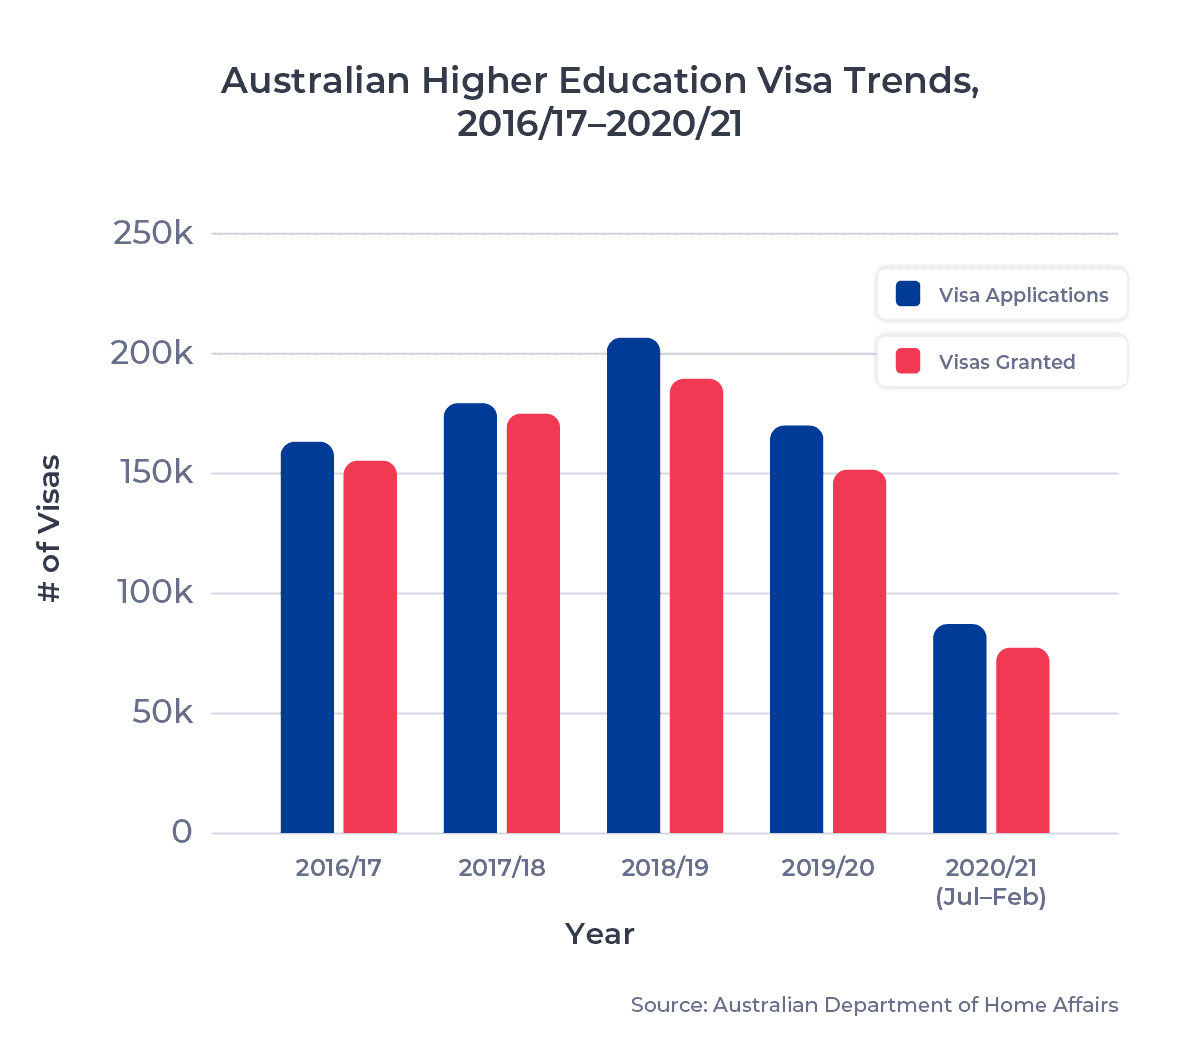 Australia Higher Education Visa Trends vertical bar graph, showing # of visas issued from 2016/17 to 2020/21